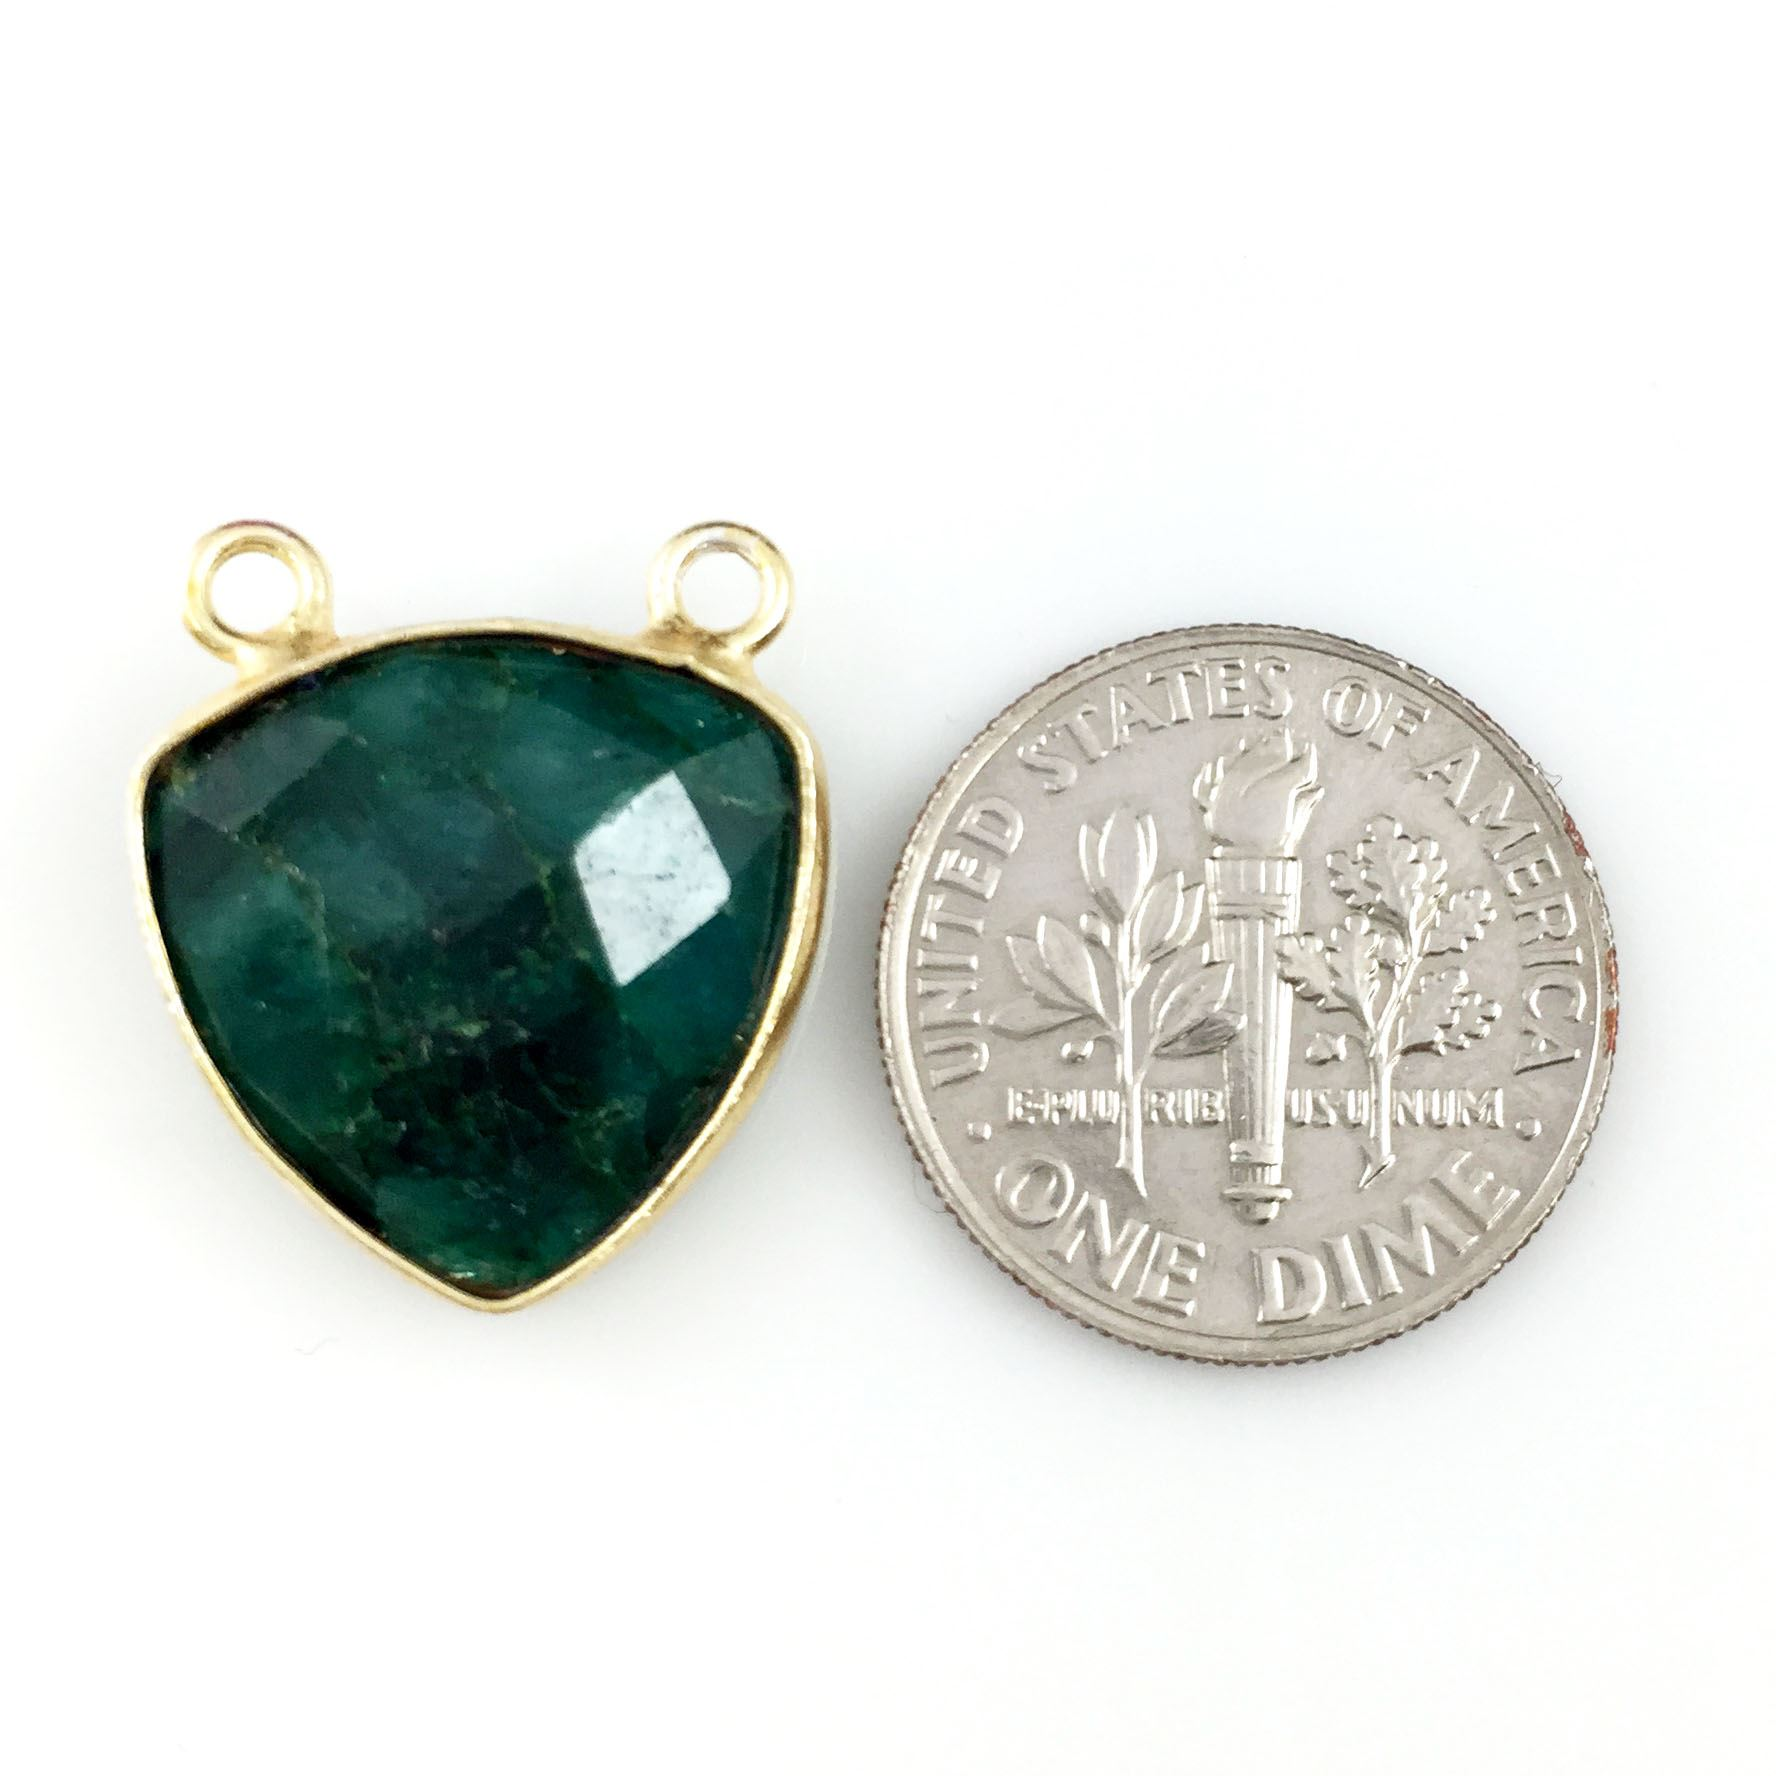 Bezel Gemstone Connector Pendant - Emerald Dyed - Gold plated Sterling Silver - Small Trillion Shaped Faceted - 15mm - 1 piece